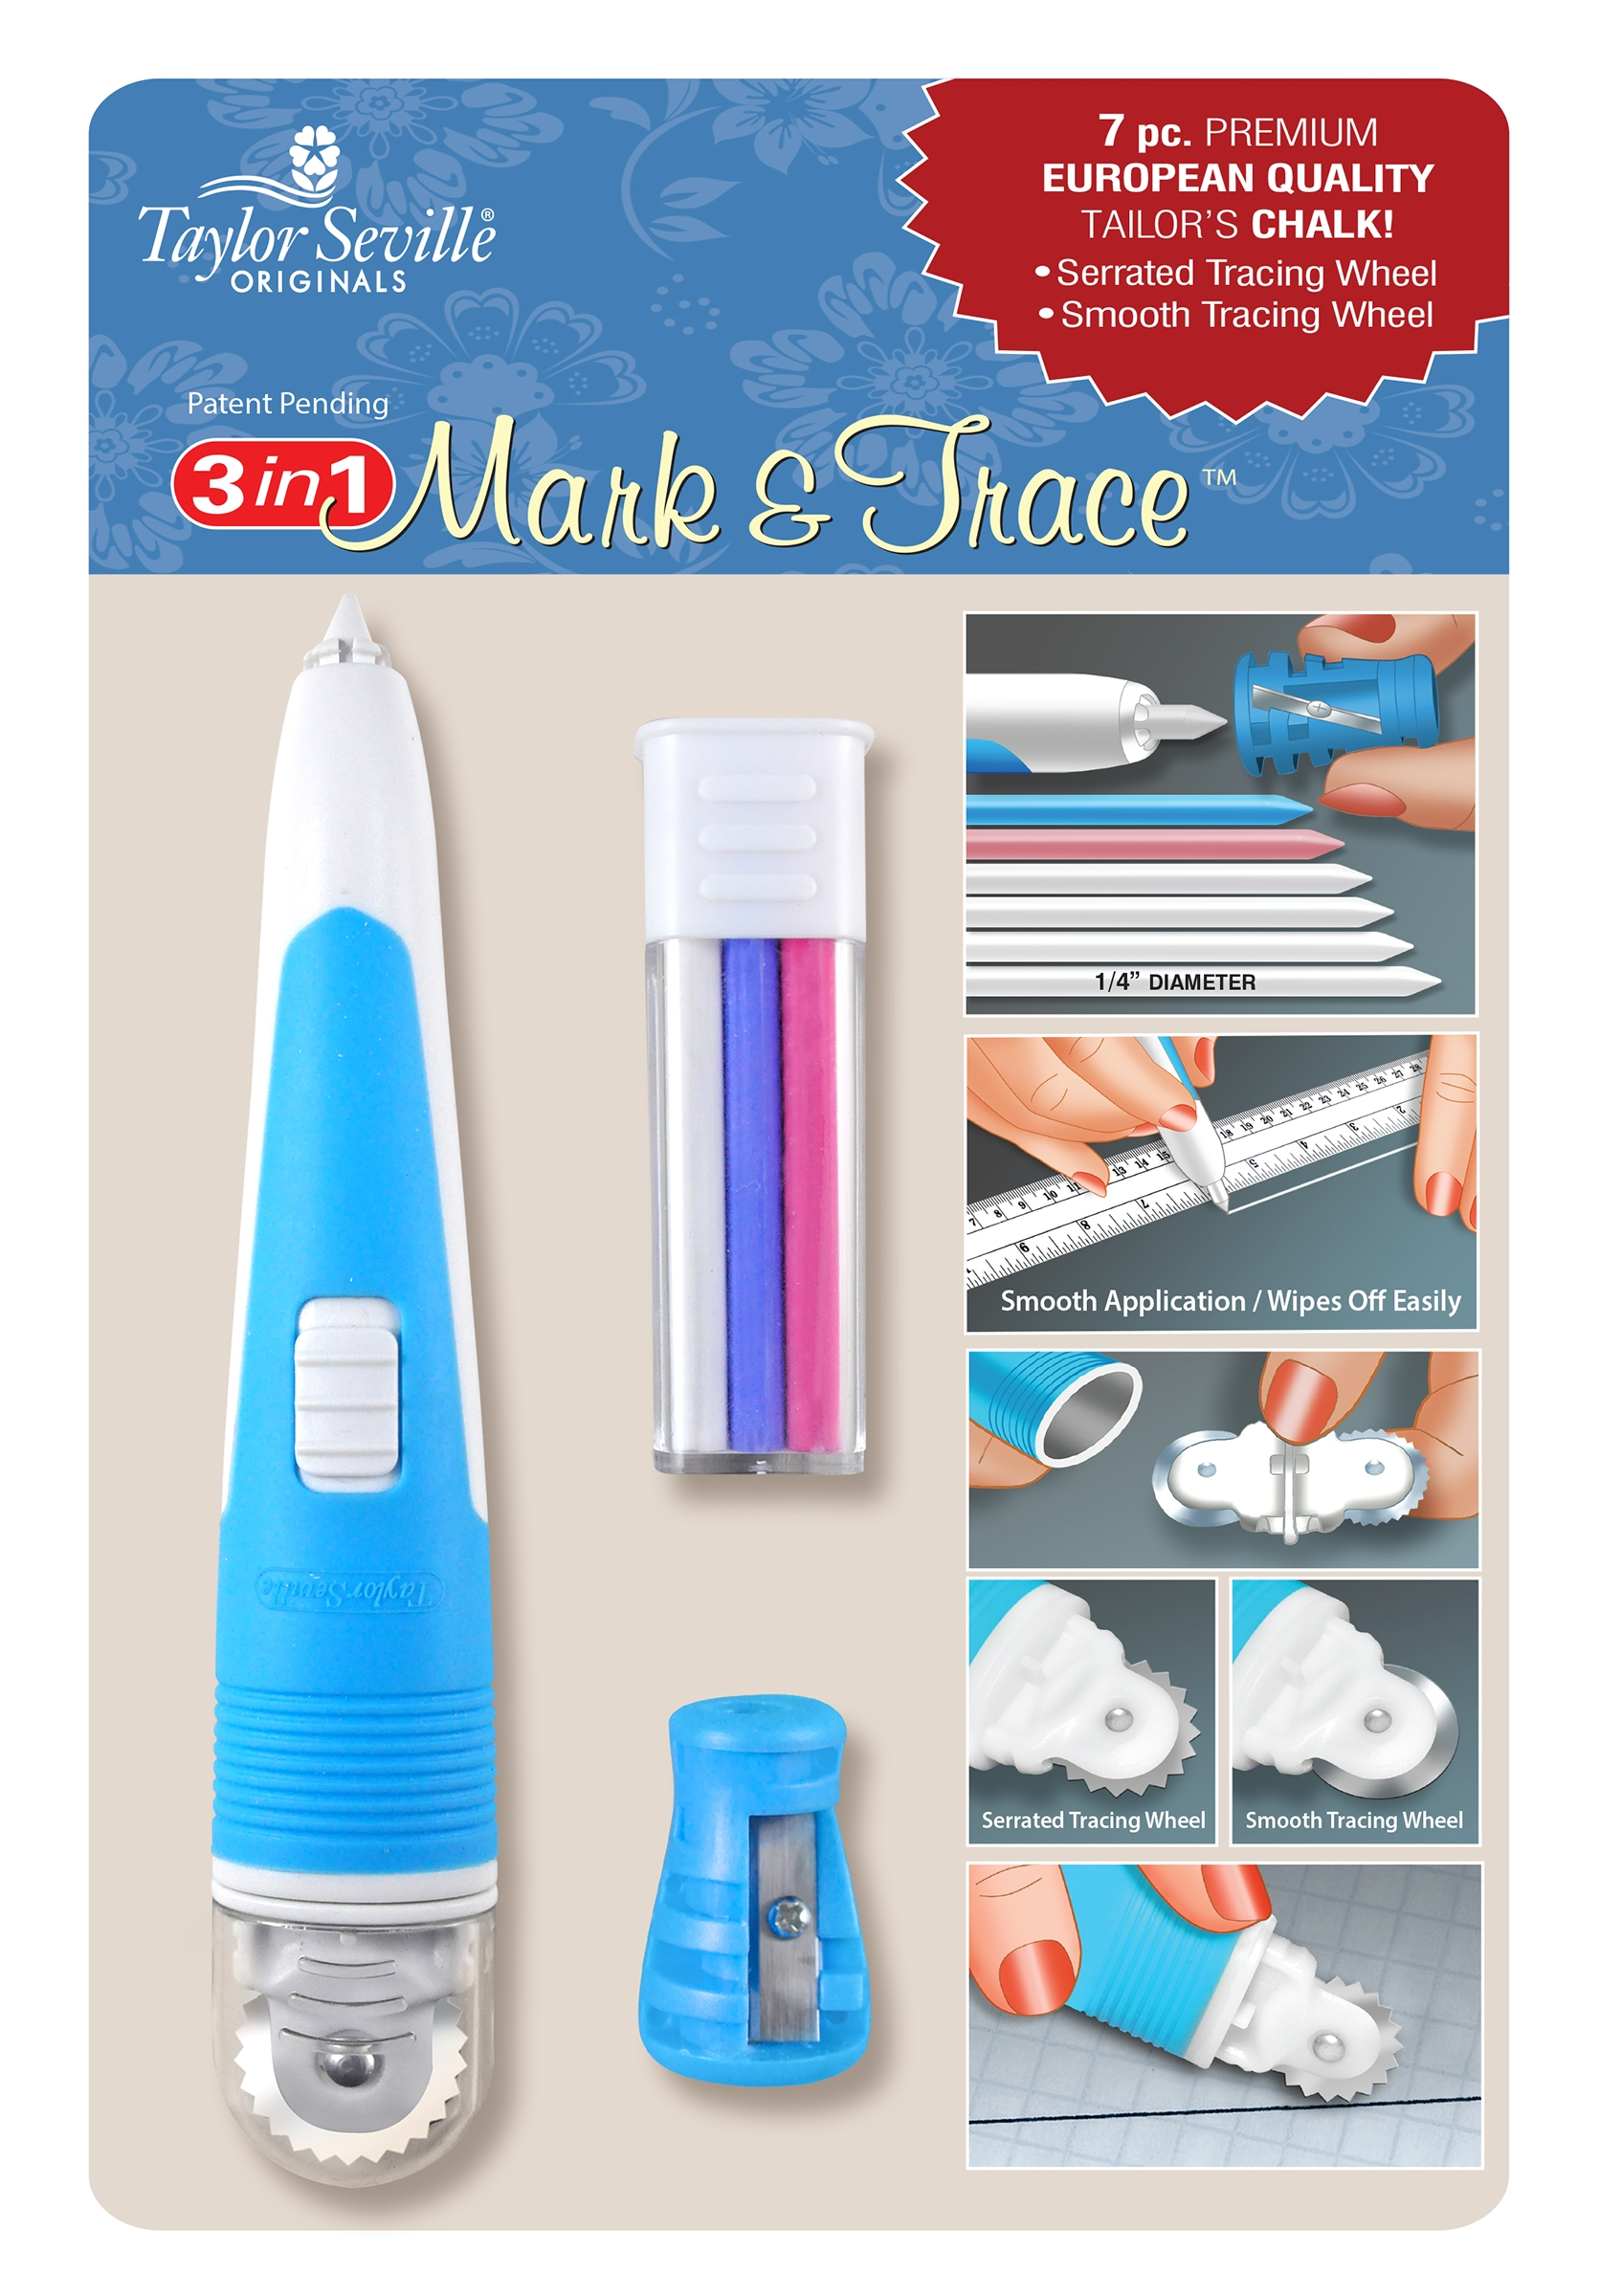 3-in-1 Mark 'n Trace Tool